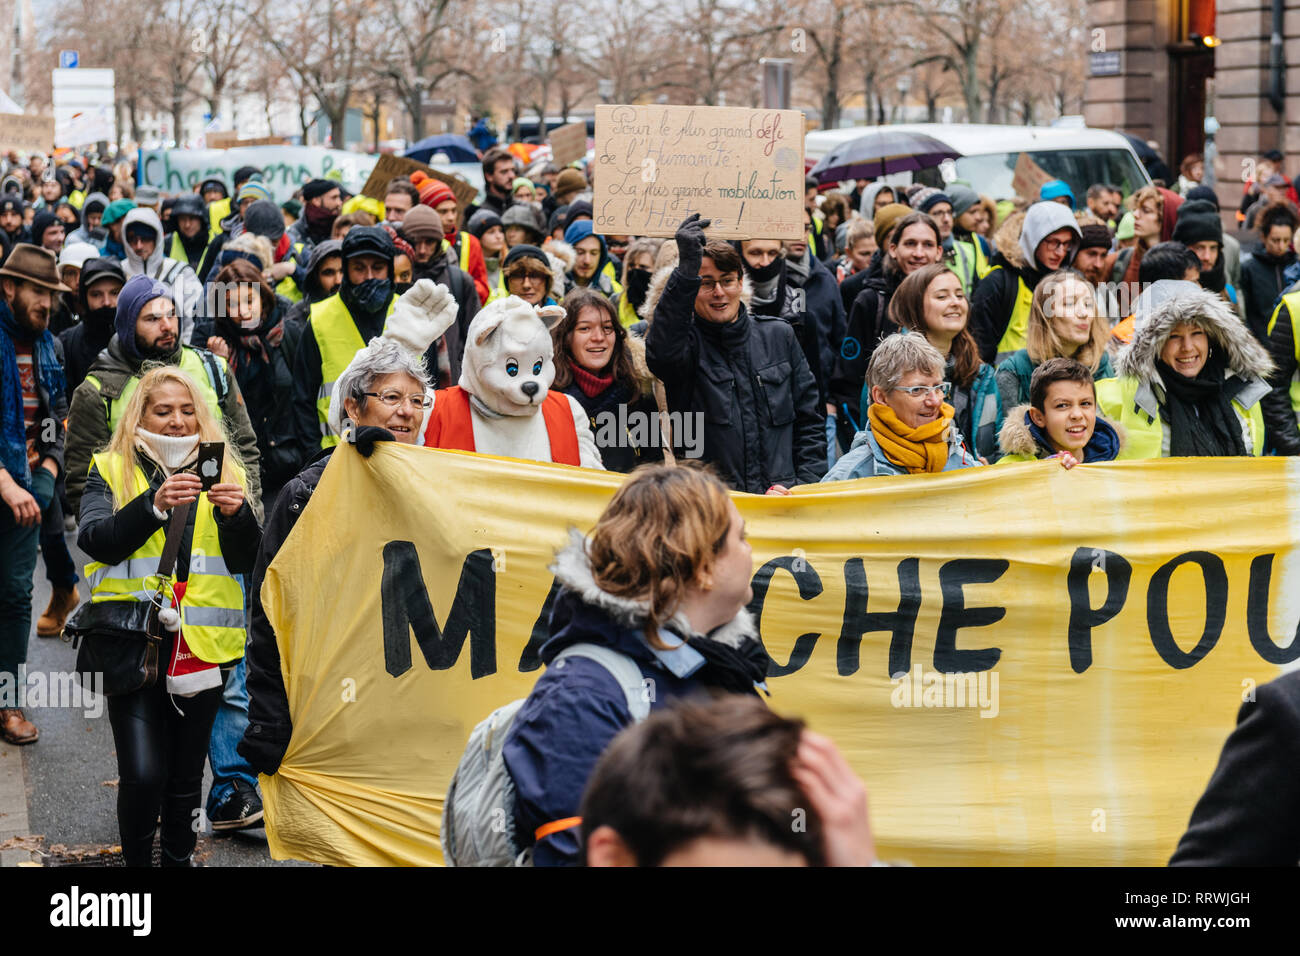 STRASBOURG, FRANCE - DEC 8, 2018: Crowd marching in Central Strasbourg at the nationwide protest Marche Pour Le Climat with large yellow palcard - Stock Image